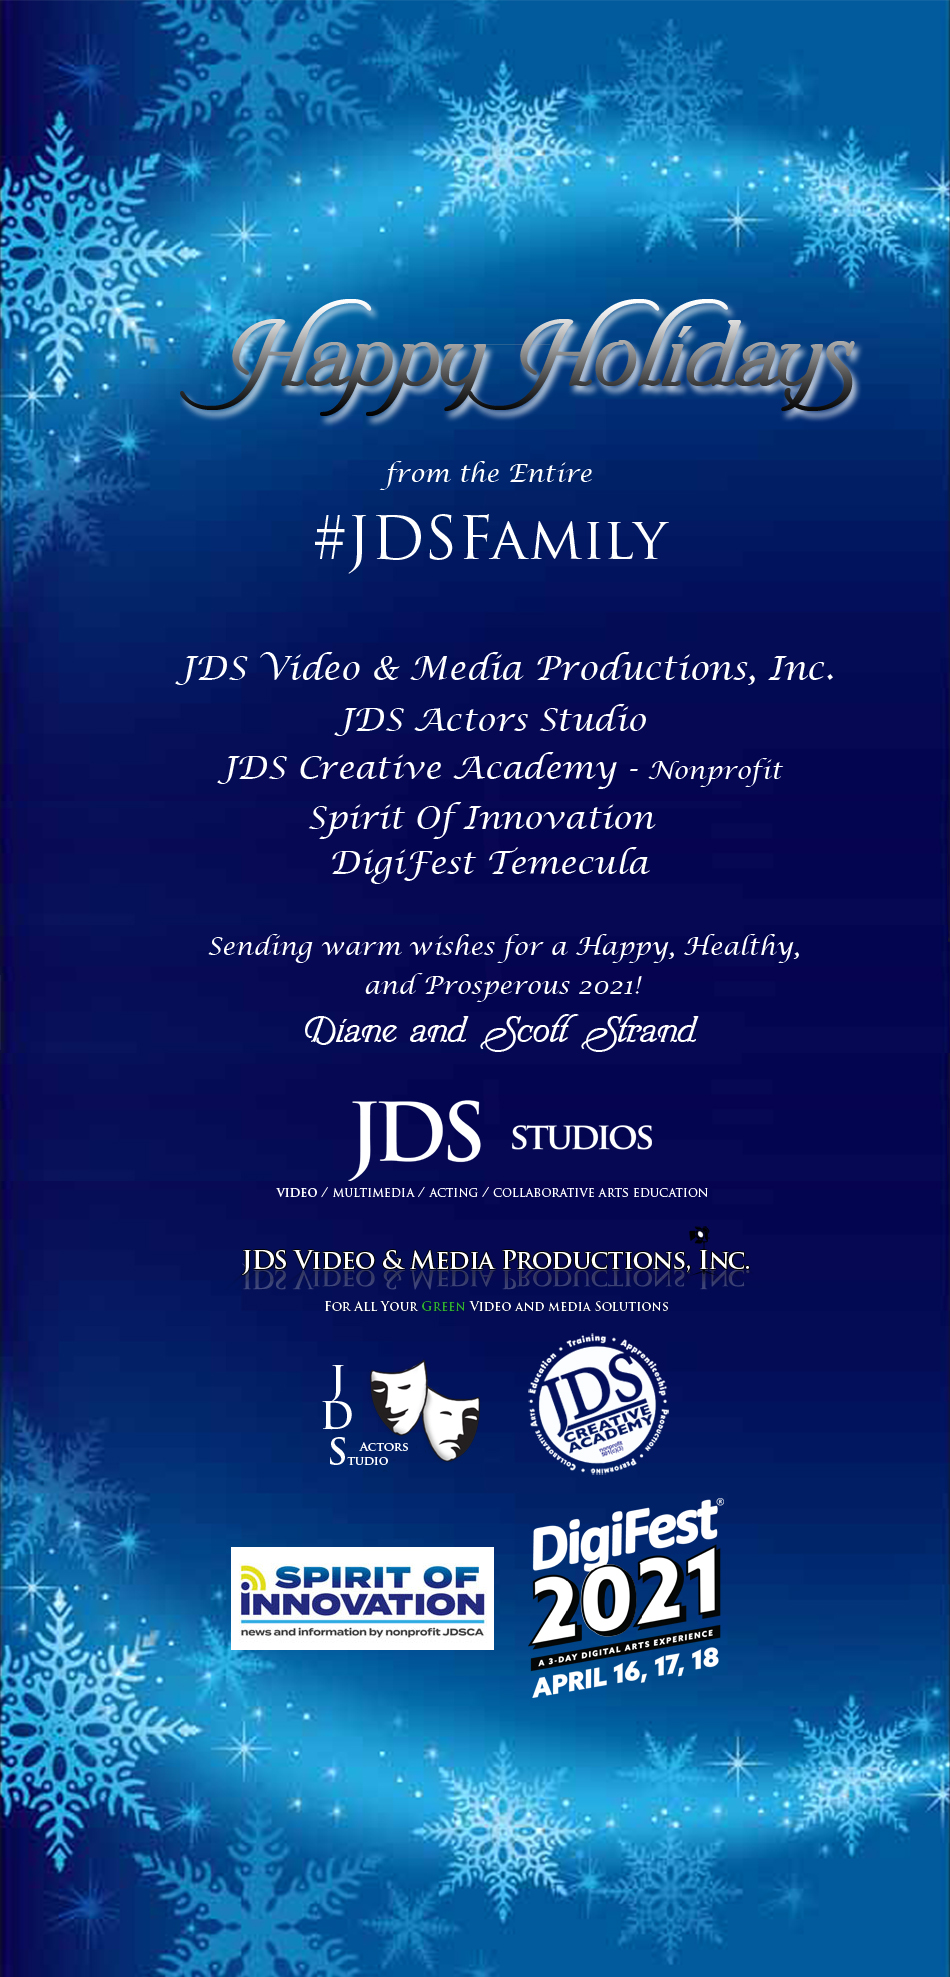 JDS Studios Happy Holidays-2020